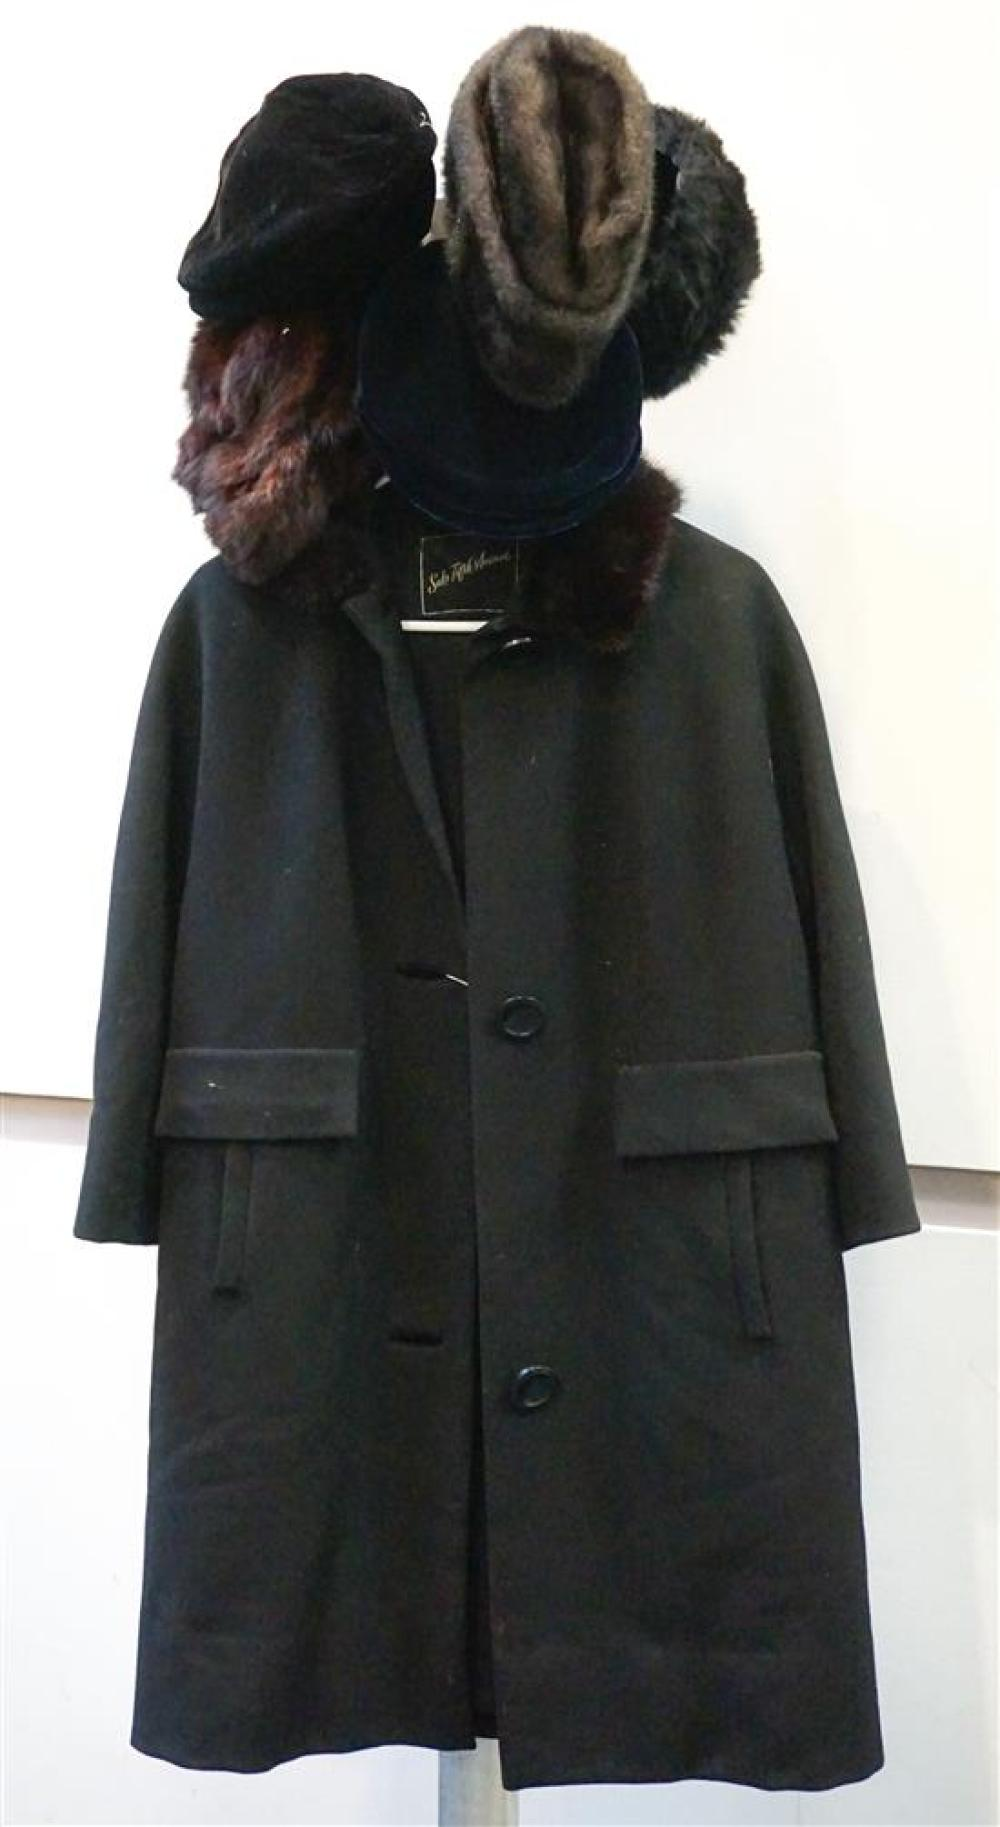 Saks Fifth Avenue Wool Crepe Coat with Fur Collar and Five Assorted Fur and Velvet Hats